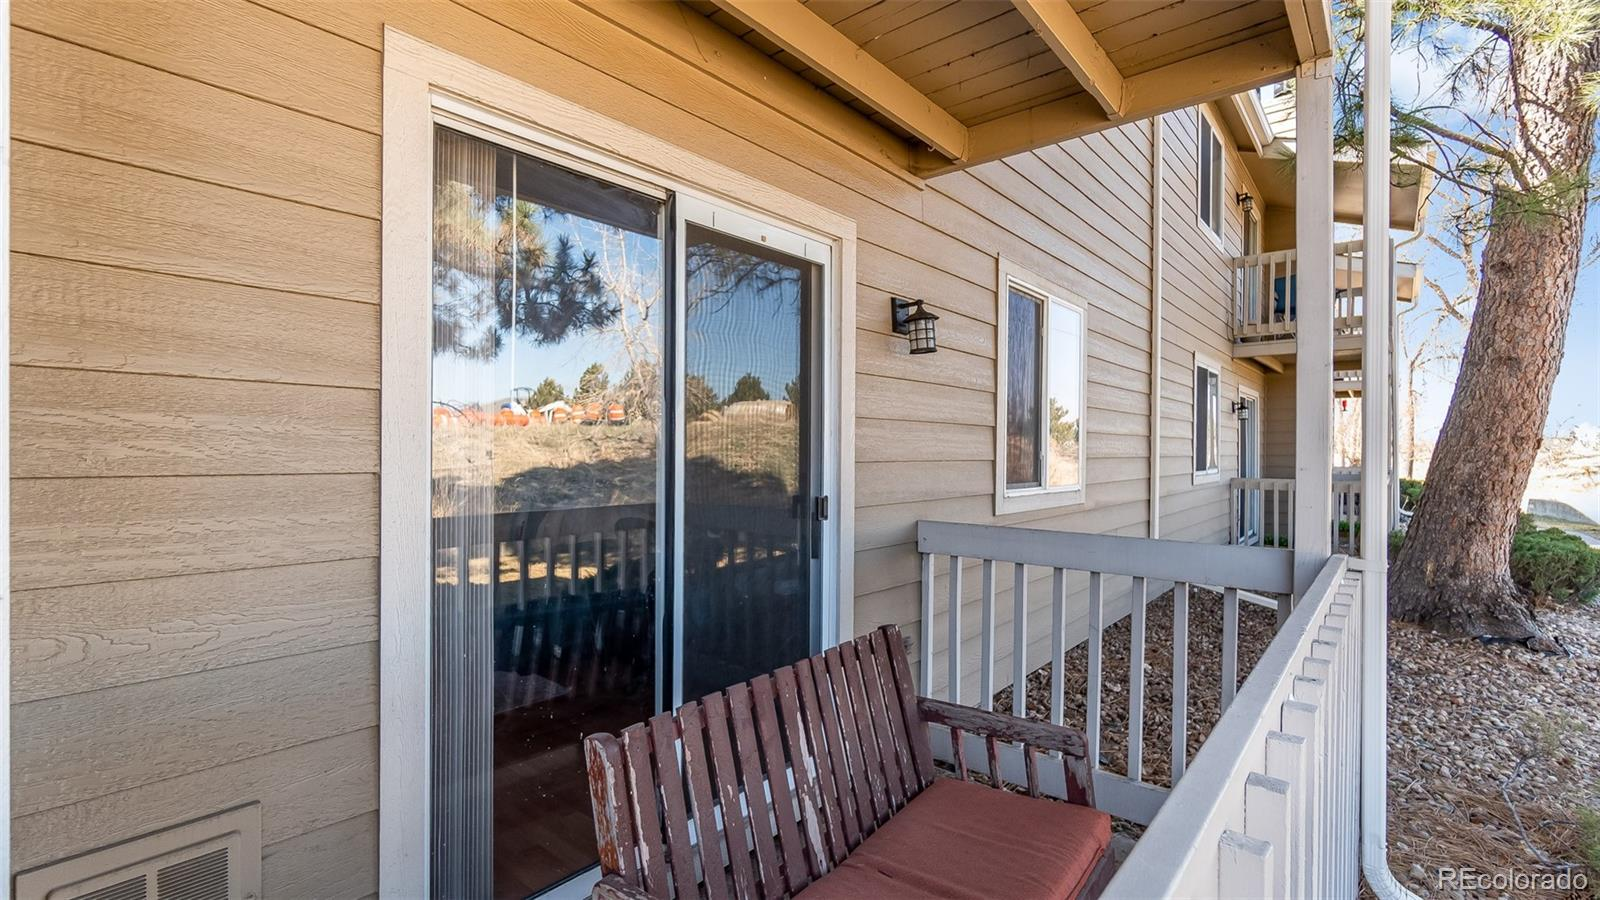 Ground floor unit located at the back of the building facing open space! New dishwasher, range and microwave in 2018. Refrigerator, washer and dryer also included. Wood burning fireplace, covered patio. Reserved off-street parking. HOA covers water, sewer and trash. 10 minute drive to Anschutz Medical Campus/University Hospital/Children's Hospital. Light rail R-line stop approximately 1 miles away. Walking distance to Heather Ridge golf course. Current lease ends 6/30/20.